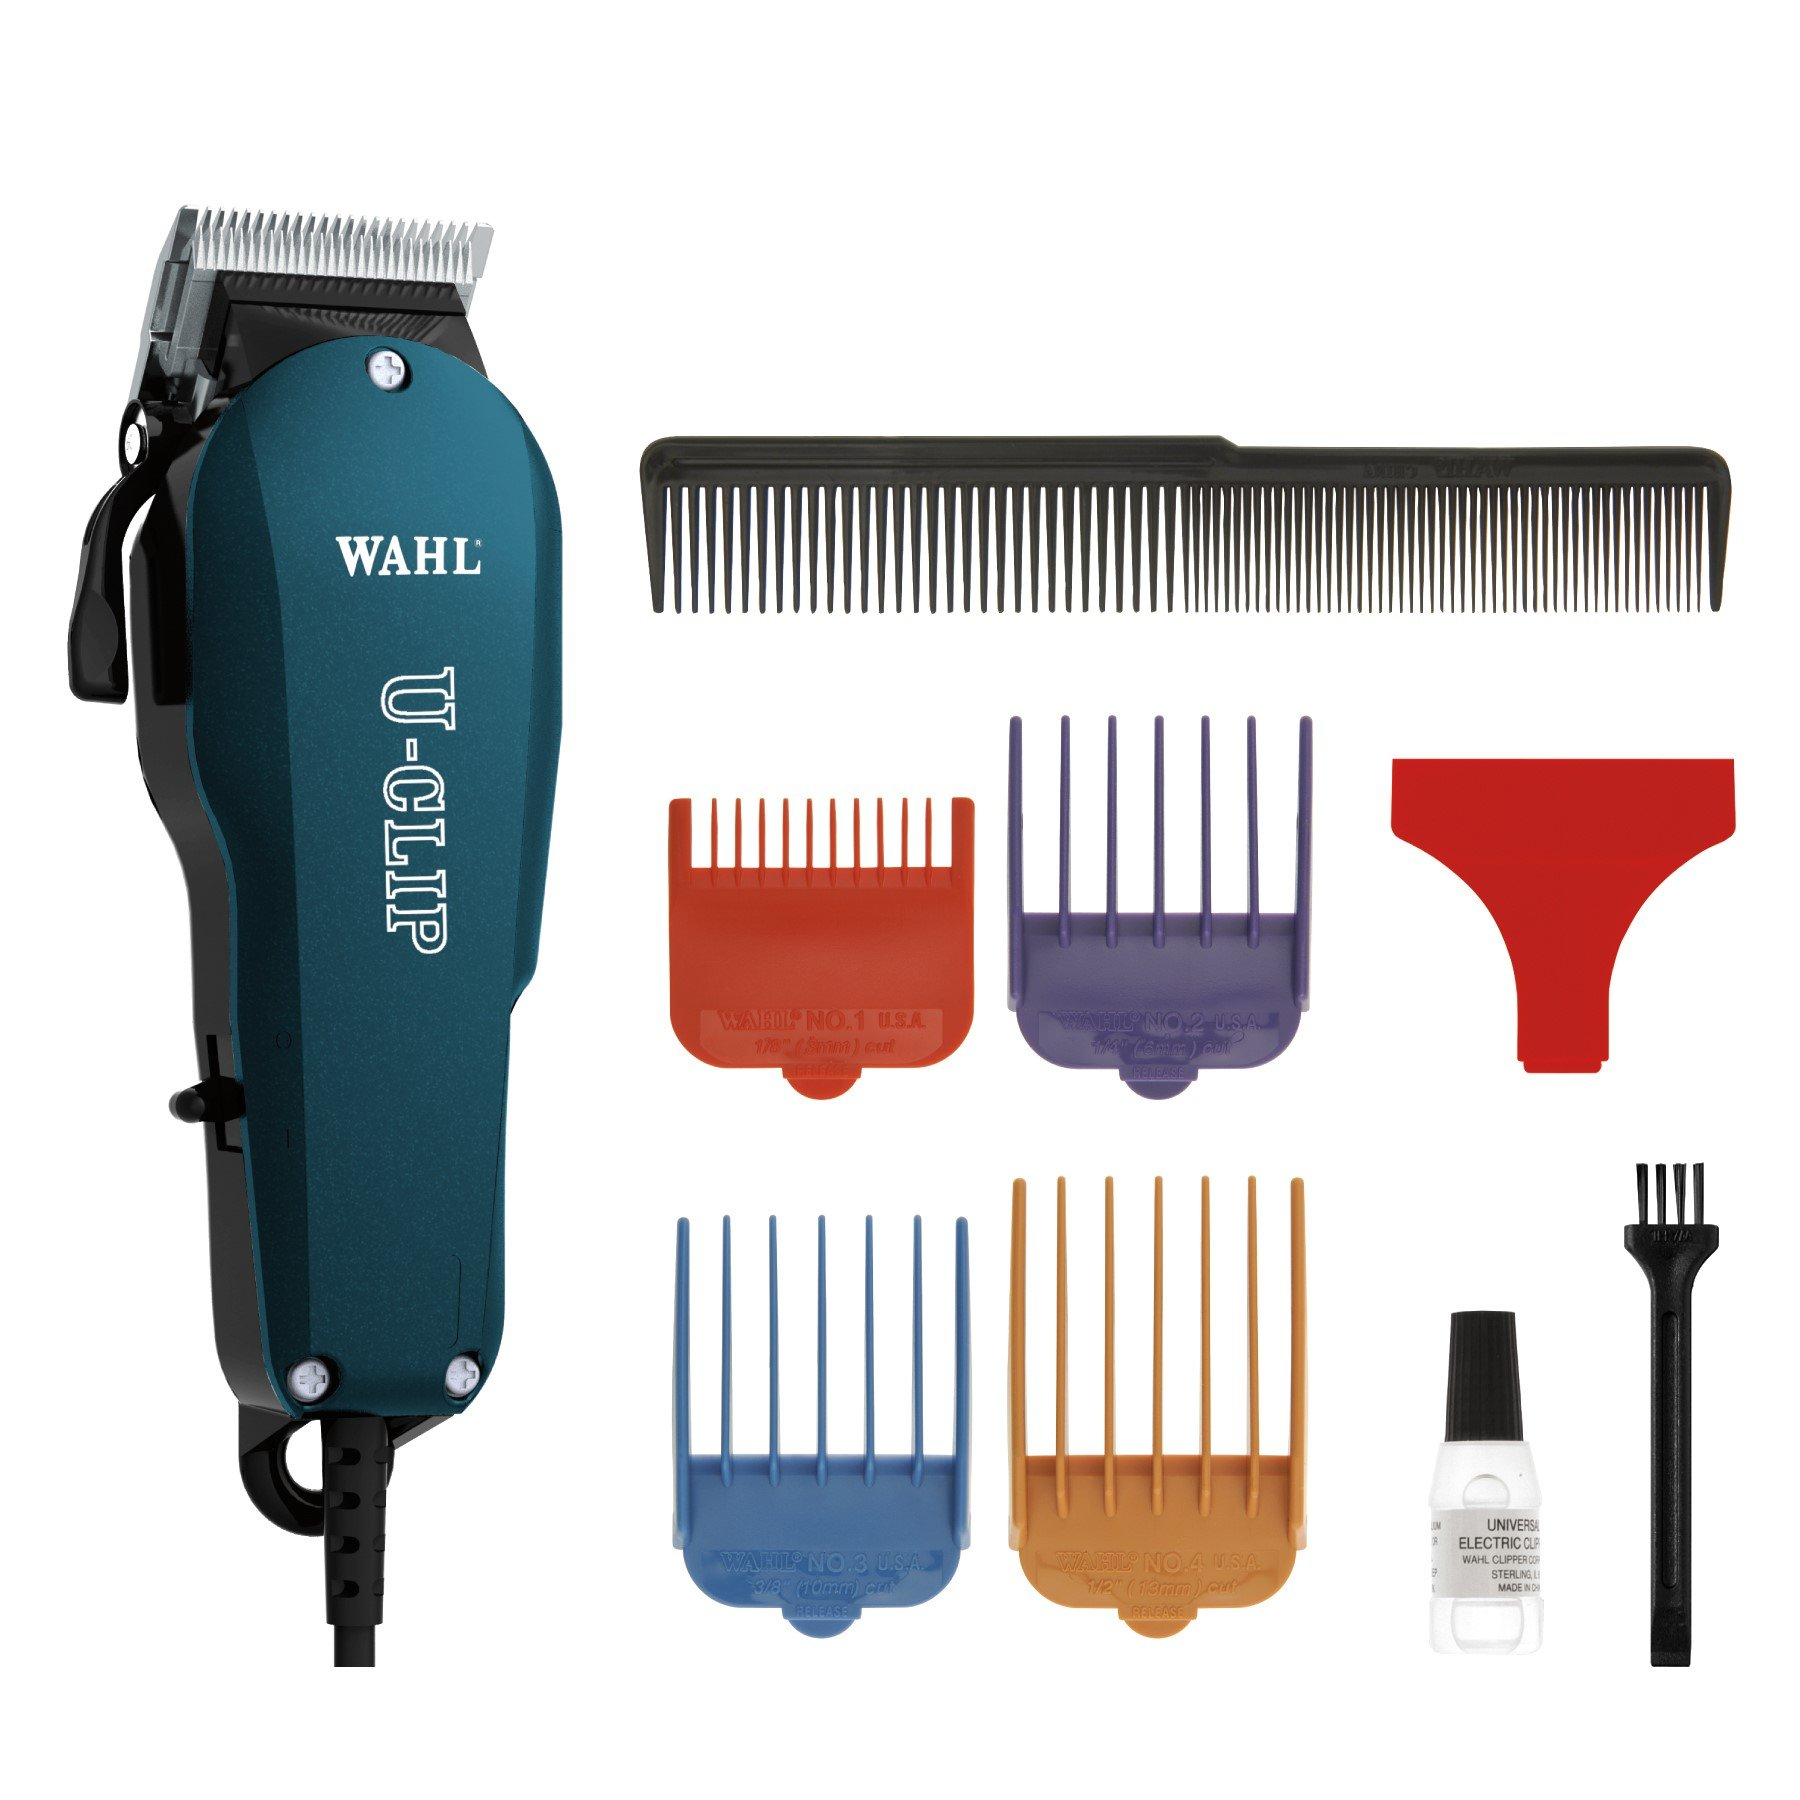 Wahl Professional Animal U-Clip Pet Clipper Trimmer Grooming Kit for Dogs Cats and Pets Hair Fur #9484-400